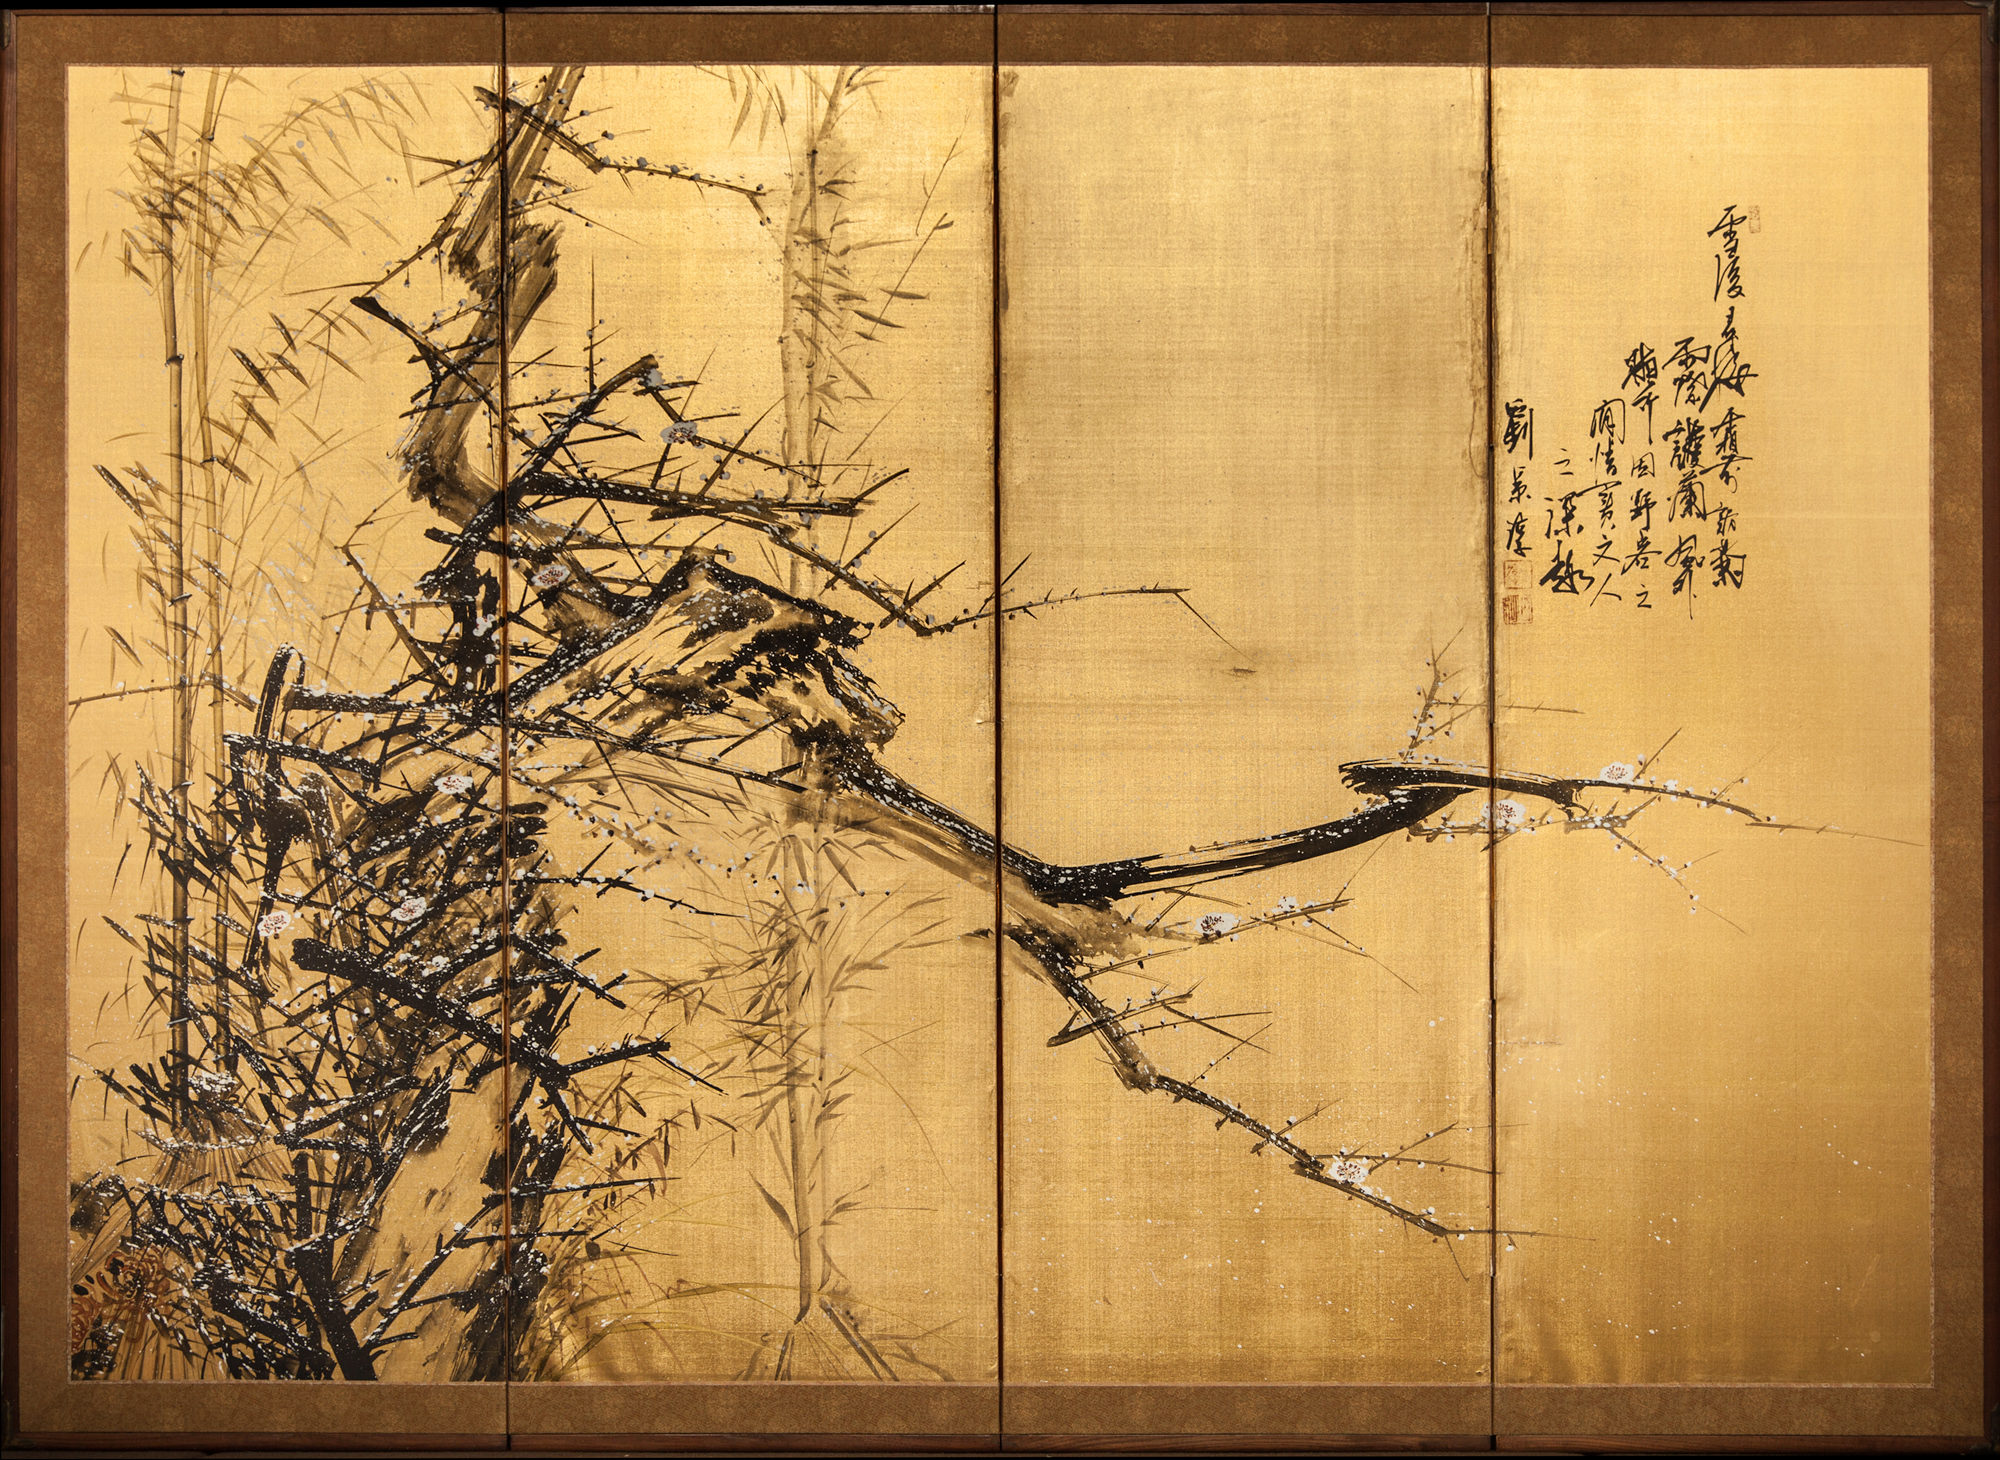 Japanese Four Panel Screen: Craggy Plum and Bamboo in Winter with Calligraphy